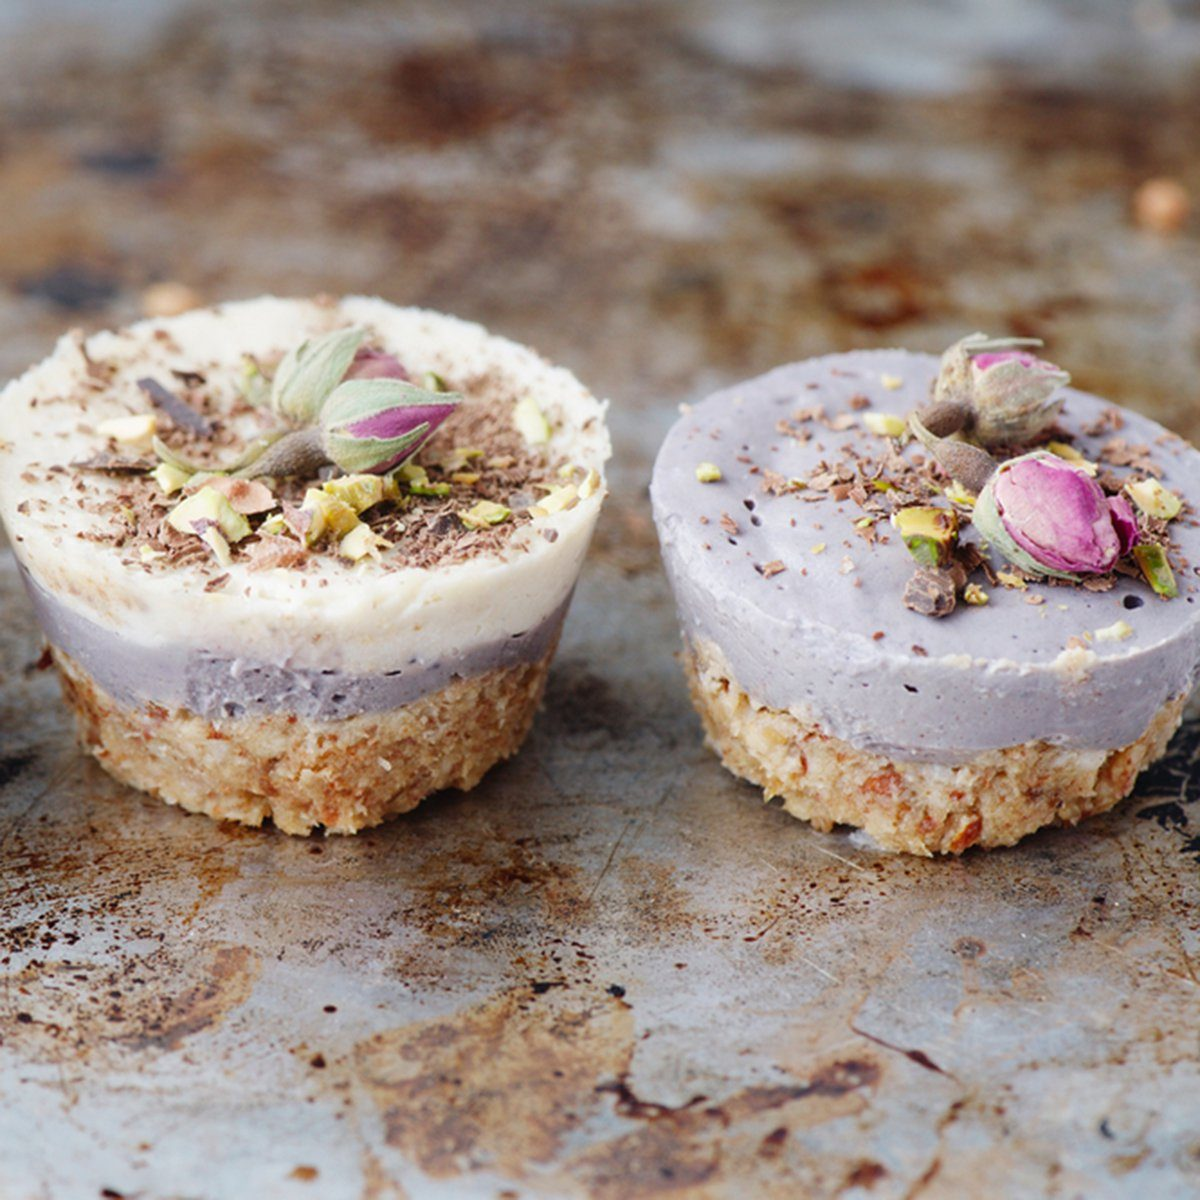 Vegan mini cheesecakes with blueberry and white chocolate layer with adding of cashews, cacao butter and coconut milk, and base made of almonds, shredded coconut and medjool dates